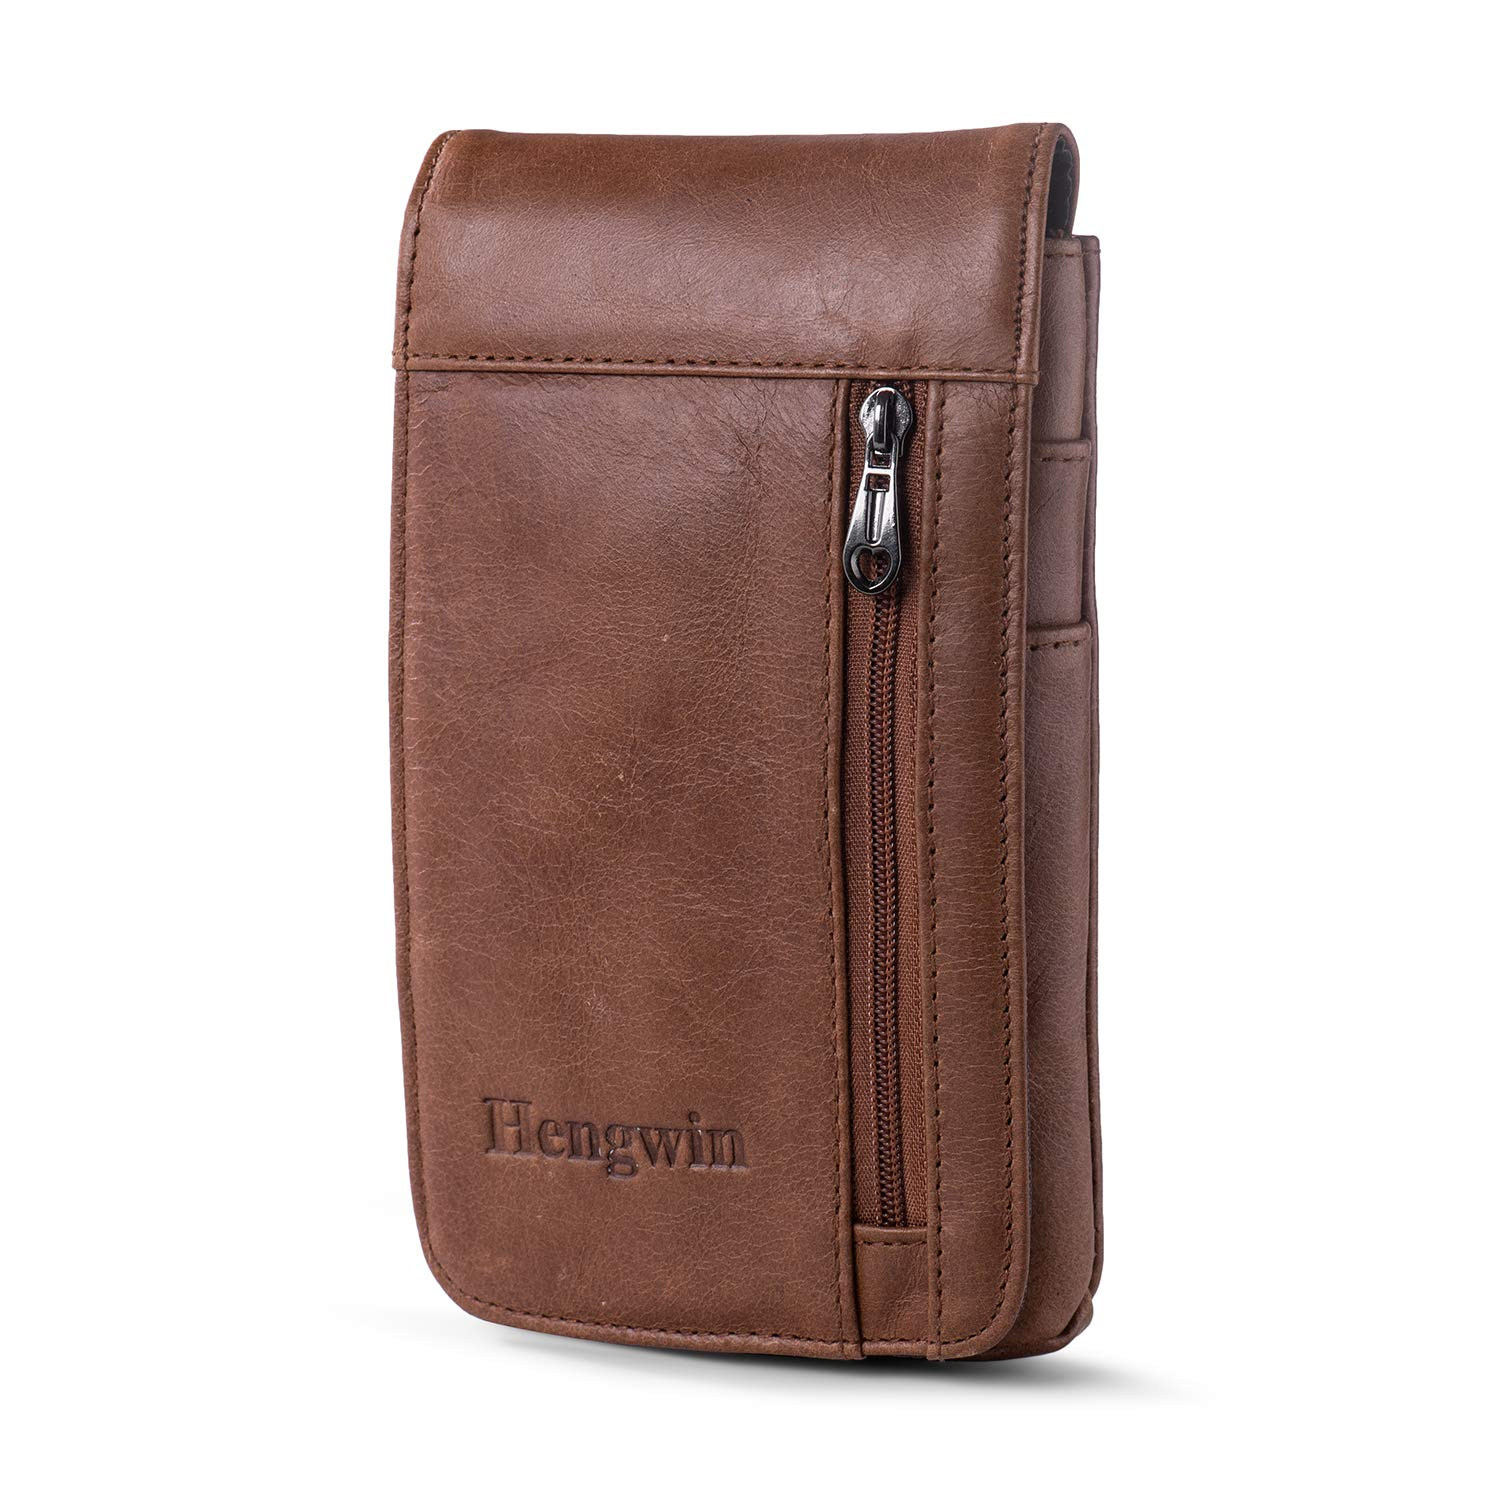 Hengwin iPhone 7 Plus Belt Clip Pouch Leather Smartphone Holster iPhone 8 Plus Belt Case for Men iPhone Xs Max Belt Loop Pouch Case iPhone 6 Plus Carrying Holster Case +Keychain (Khaki)